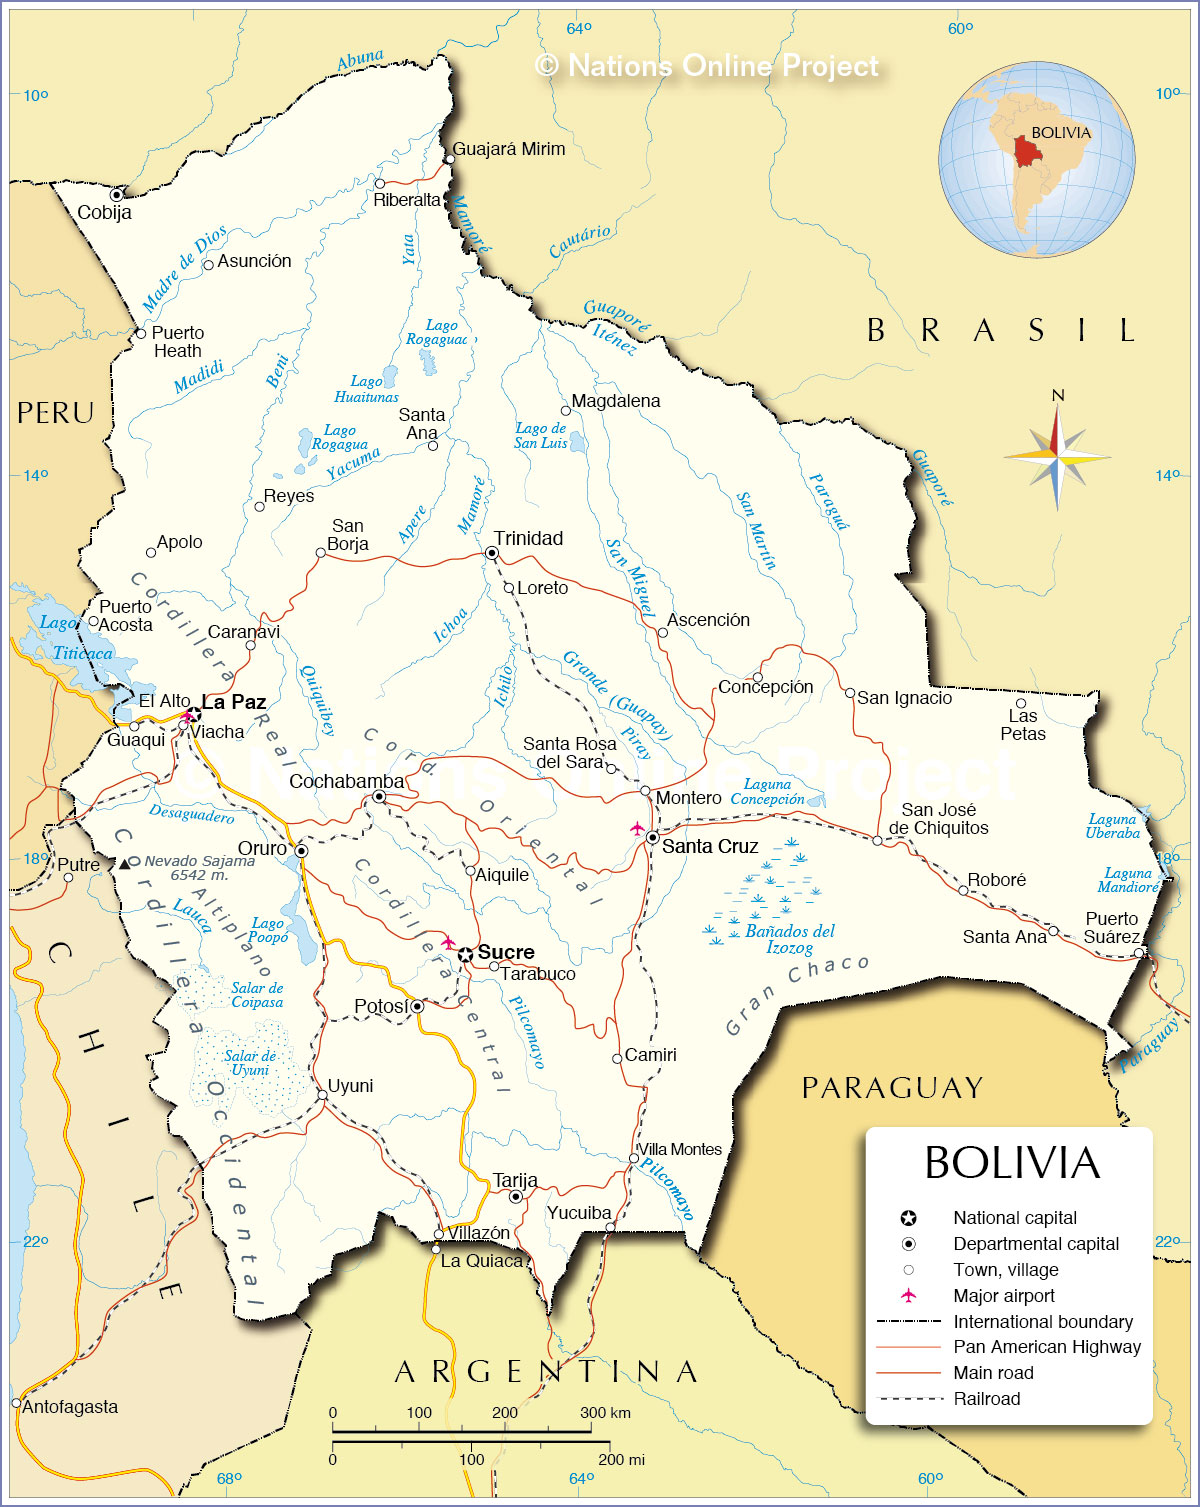 Political Map of Bolivia - Nations Online Project